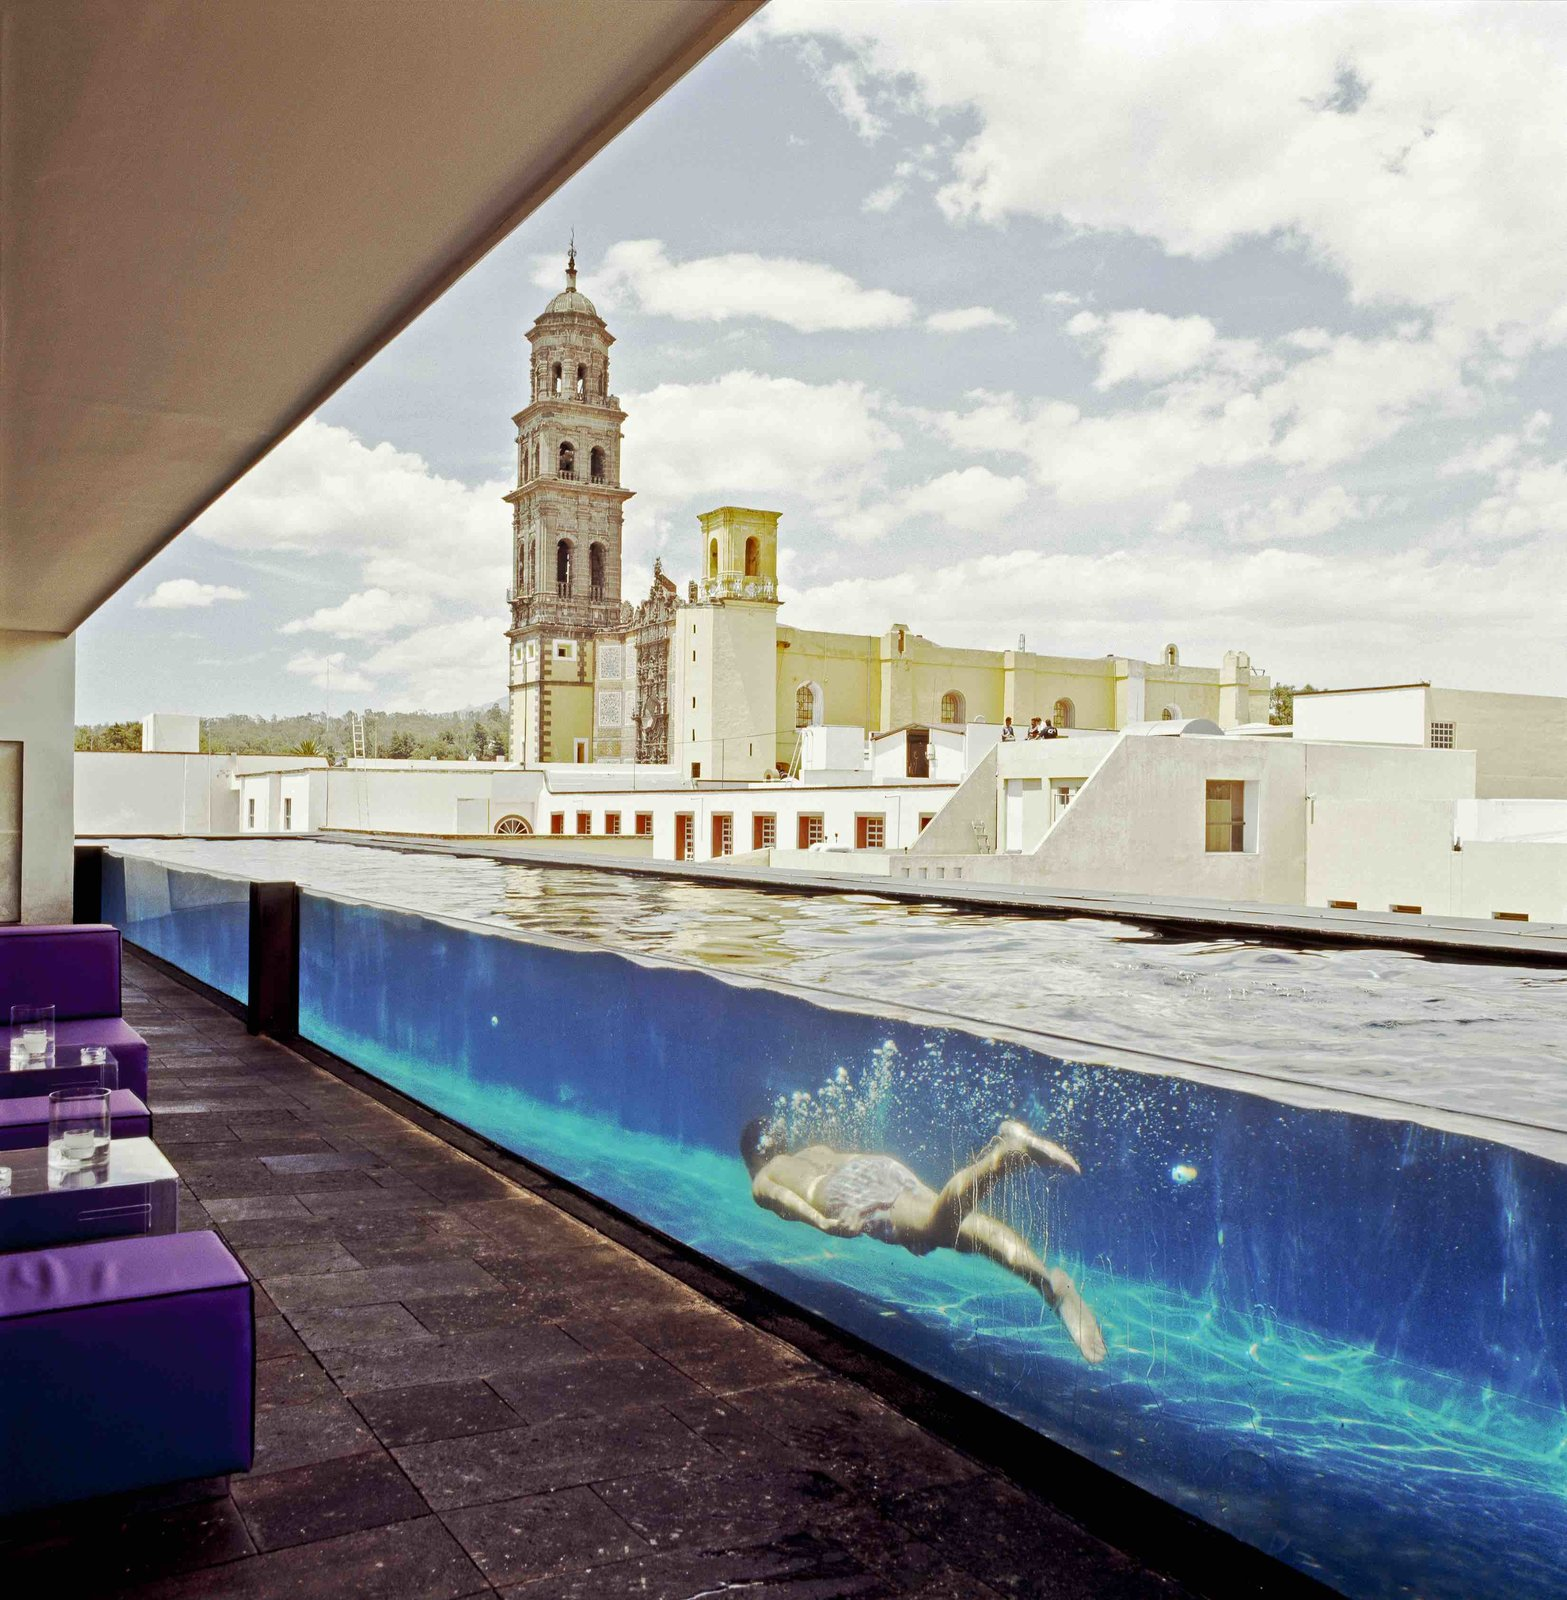 Modern furniture harmonizes with the old stone columns and walls of a former 19th century water purification factory in this Puebla boutique hotel. Archeological finds such as bottles and glass fragments for the old factory were incorporated into the interior design.  Photo 7 of 7 in 7 Modern Hotels in Mexico You Have to Visit